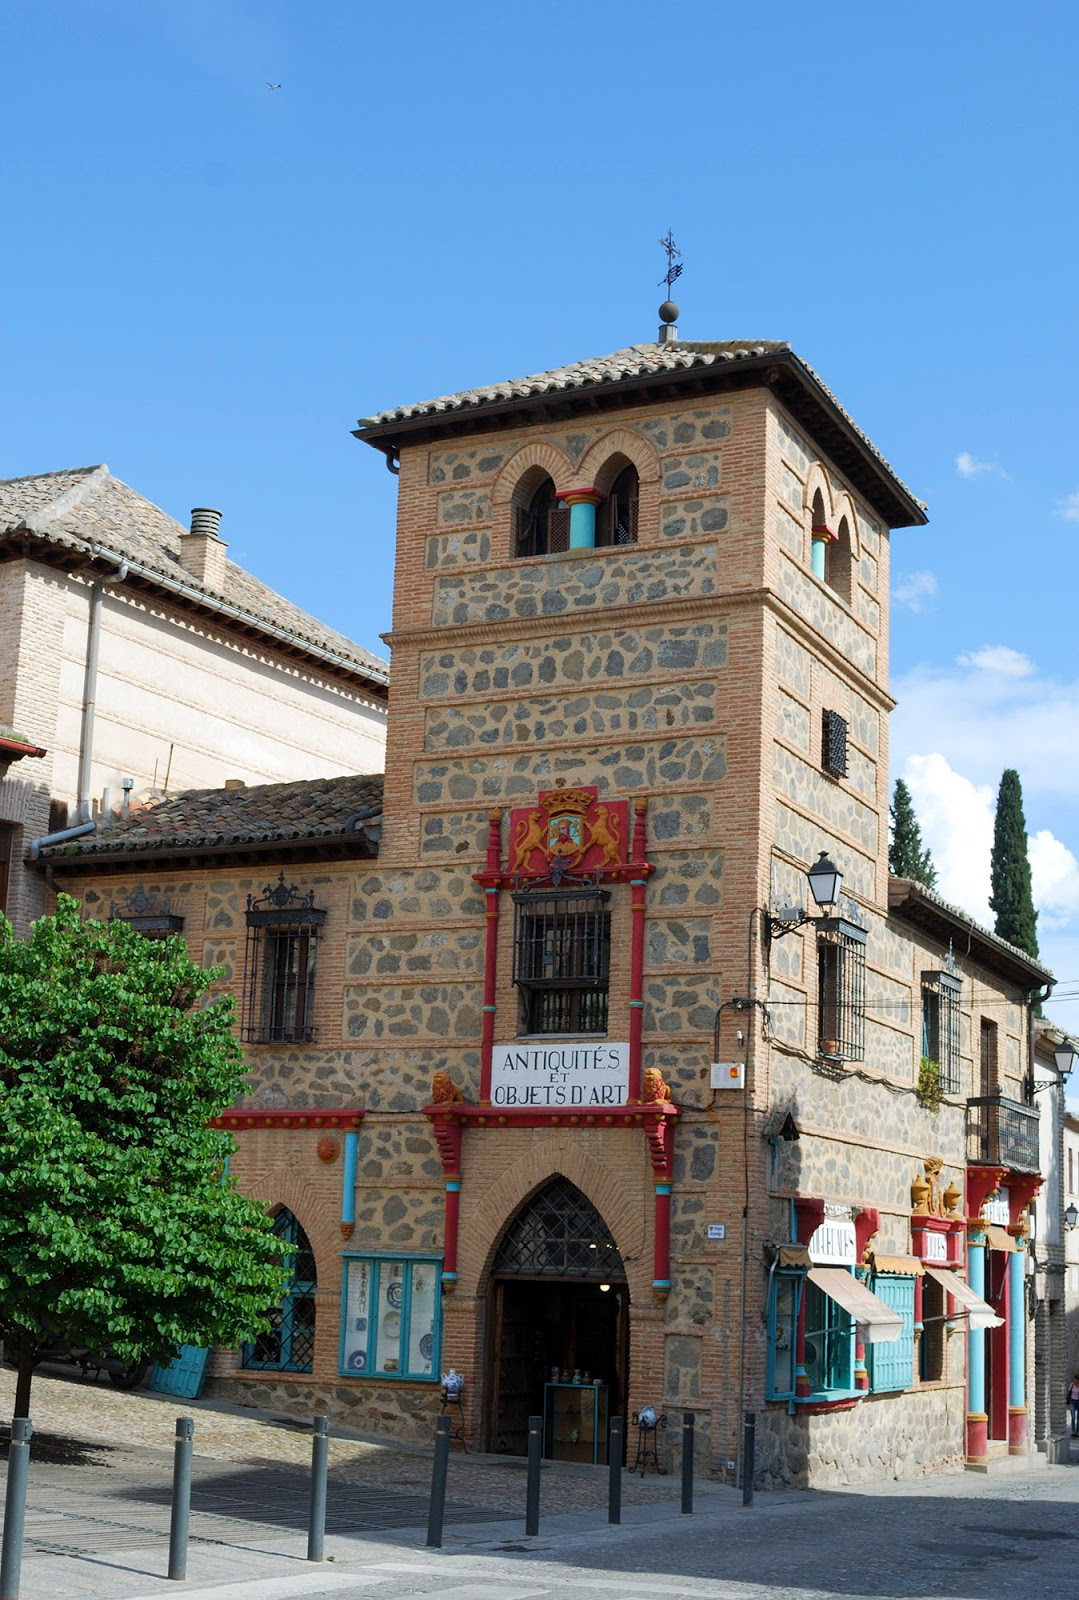 shop antiques sword steel toledo spain landmark history travel guide tourism day trip itinerary